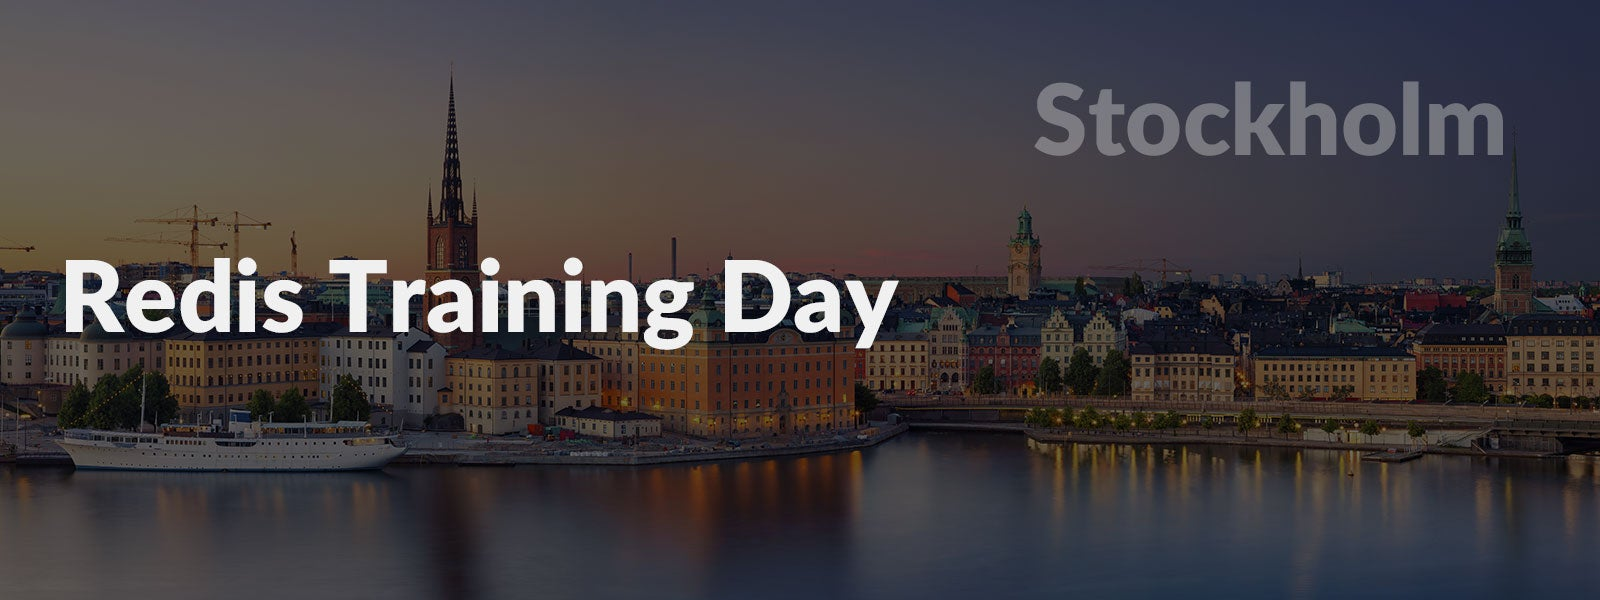 Redis Training Day Stockholm